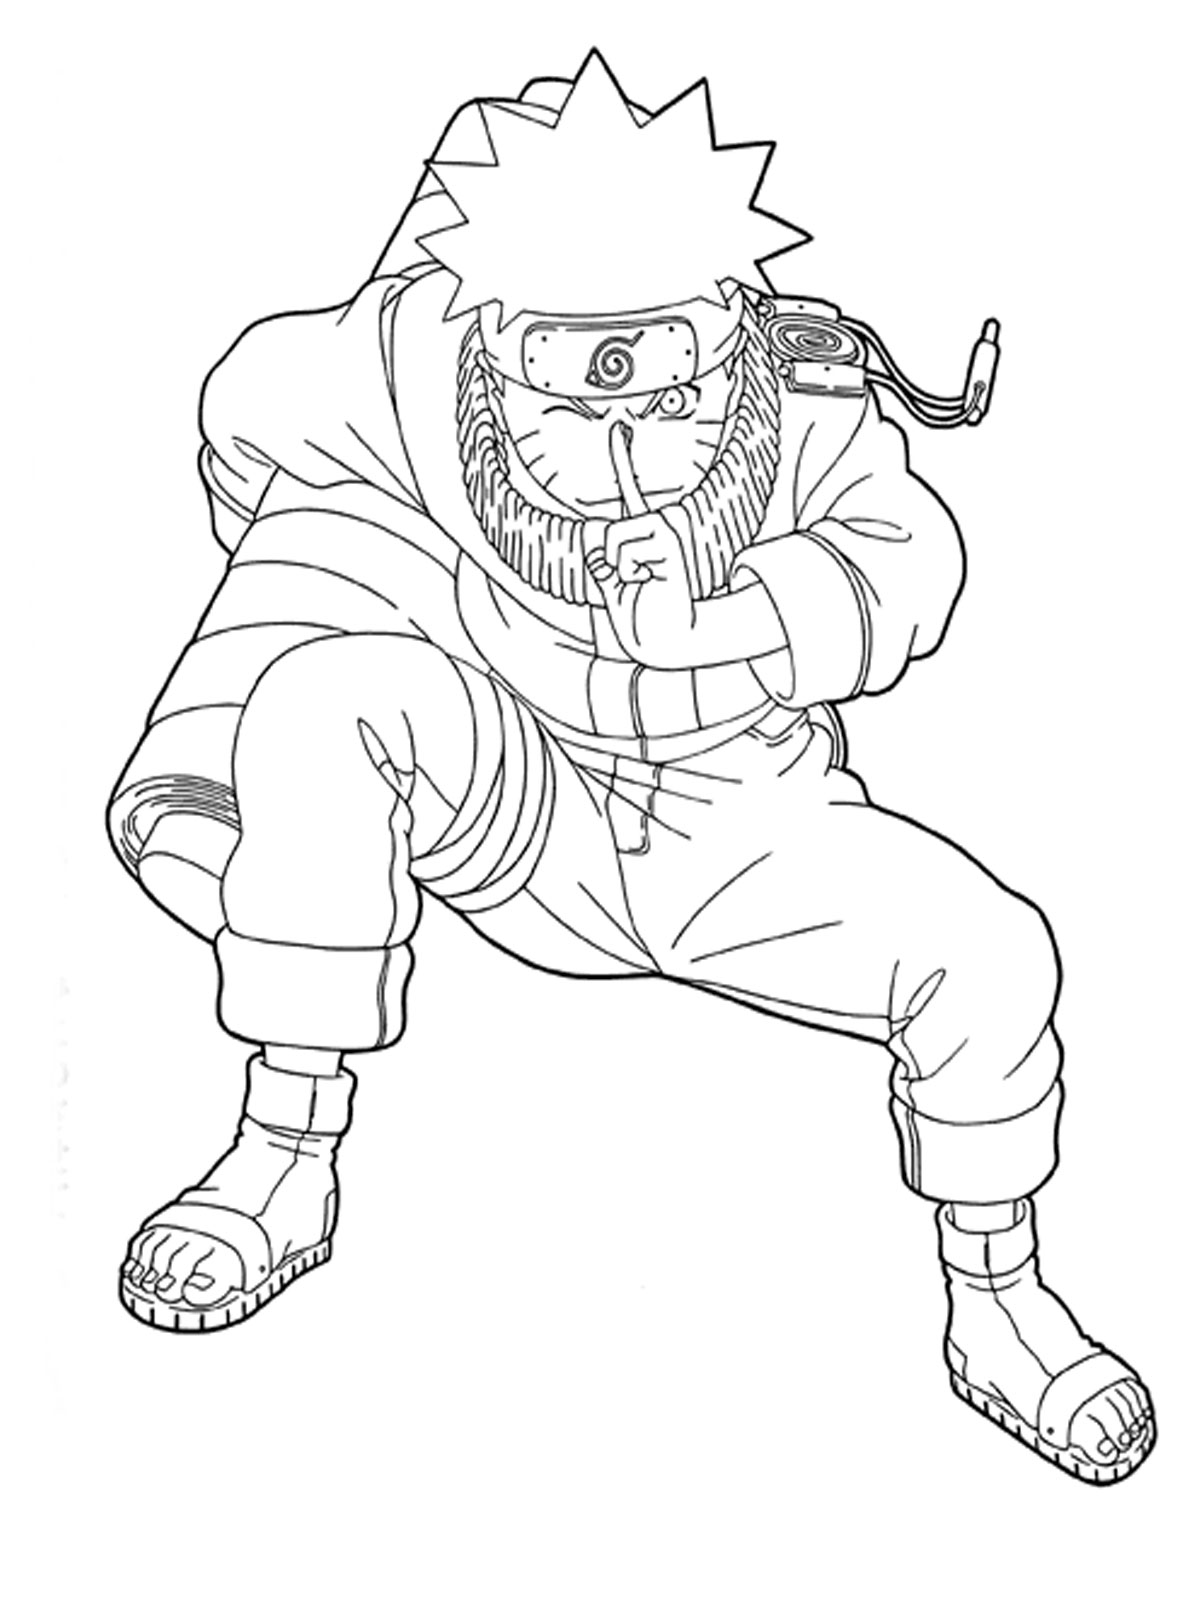 Free printable naruto coloring pages for kids for Coloring pages online